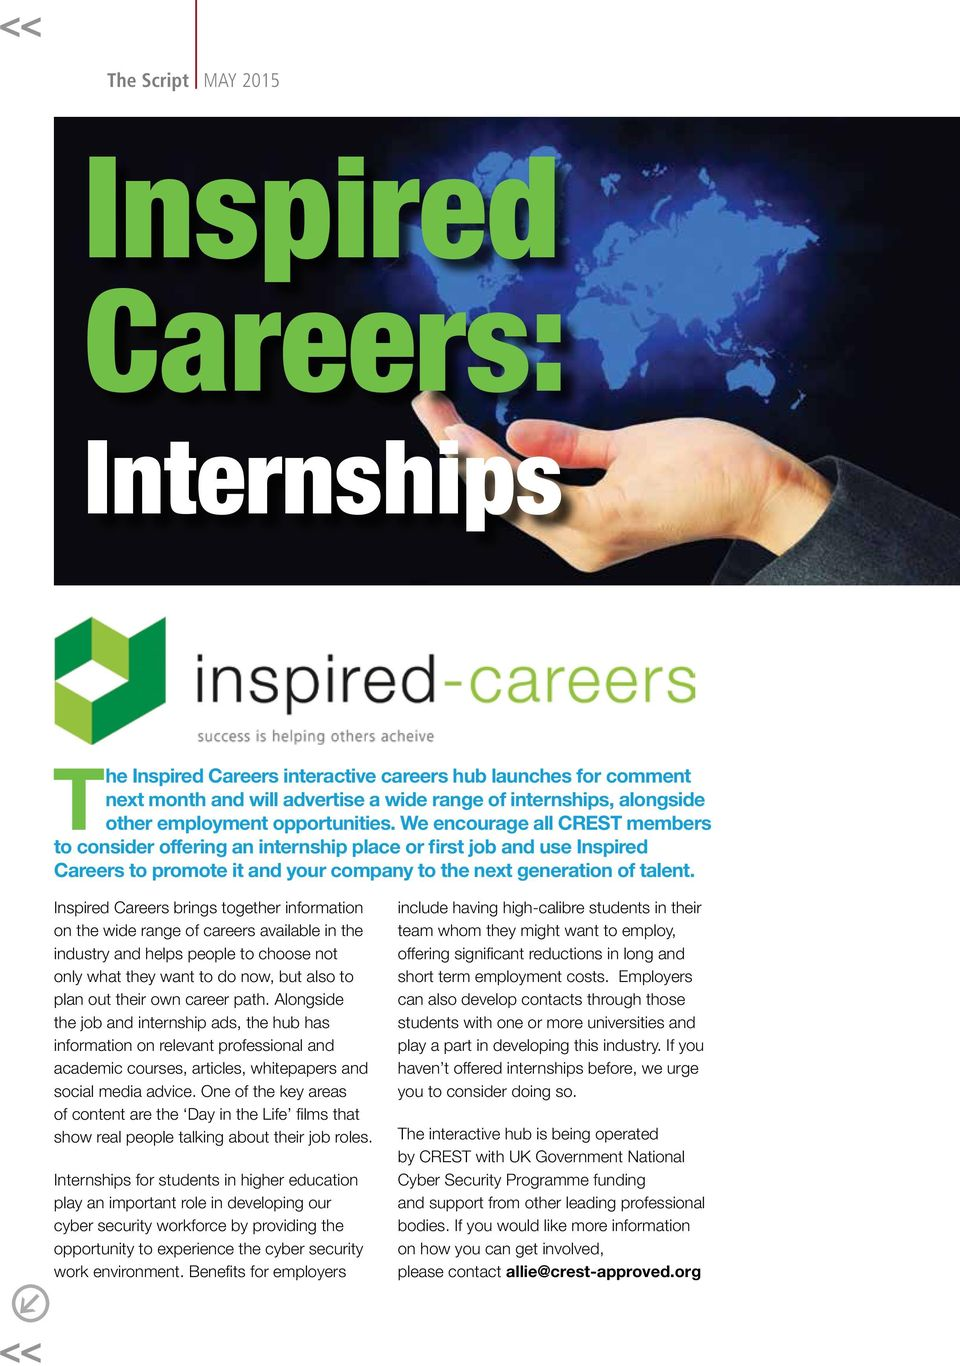 Inspired Careers brings together information on the wide range of careers available in the industry and helps people to choose not only what they want to do now, but also to plan out their own career